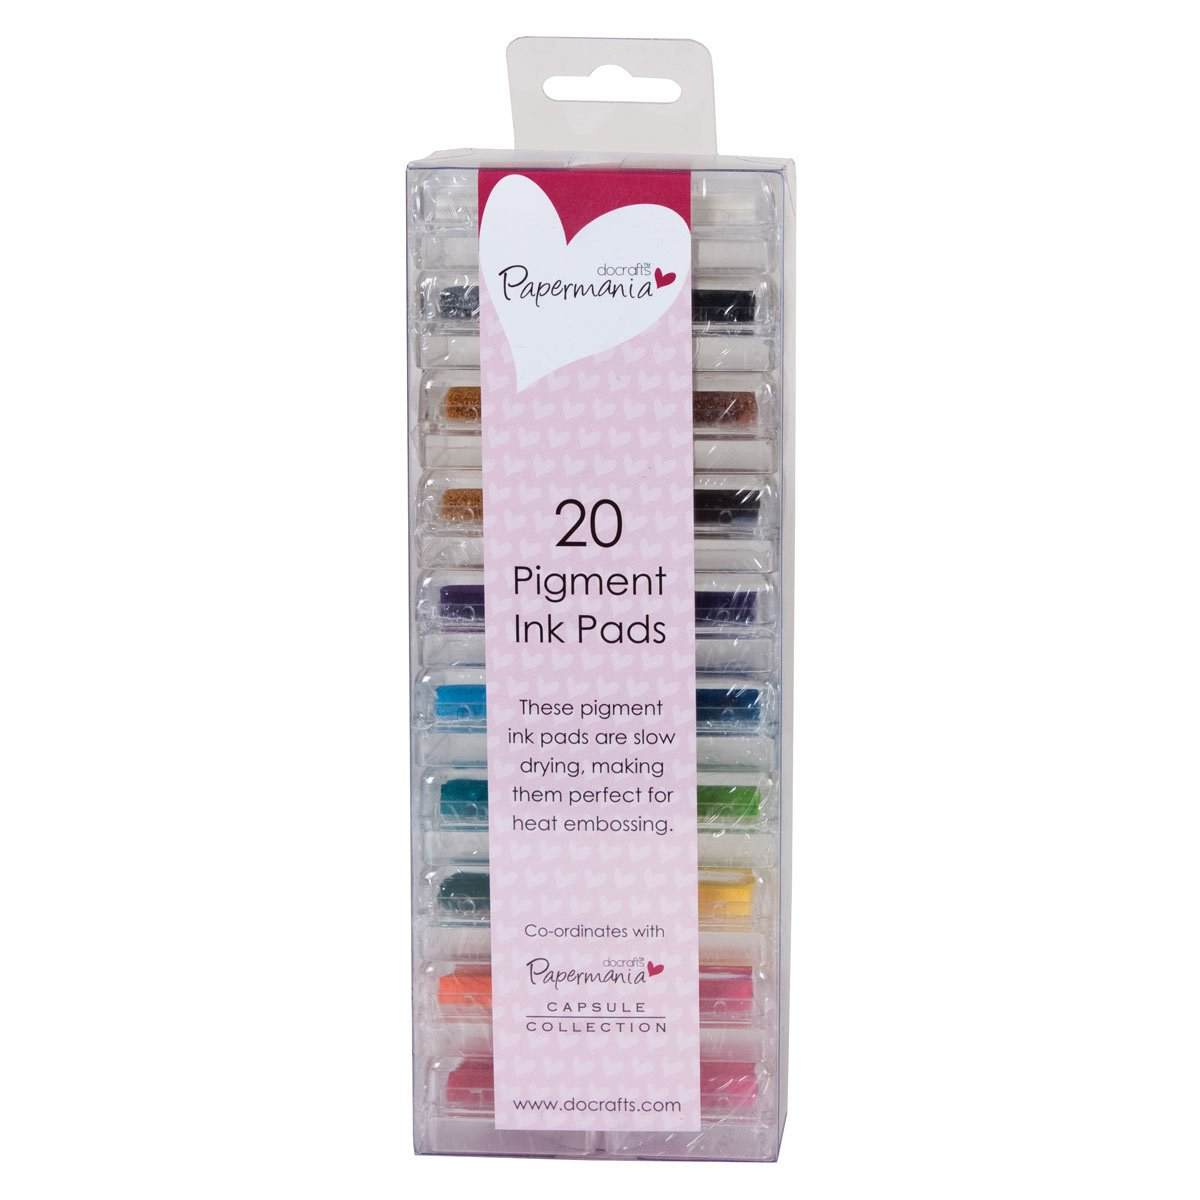 Papermania Pigment Based Mini Ink Pad, Pack of 20, Assorted Colours Docrafts PMA 5521100